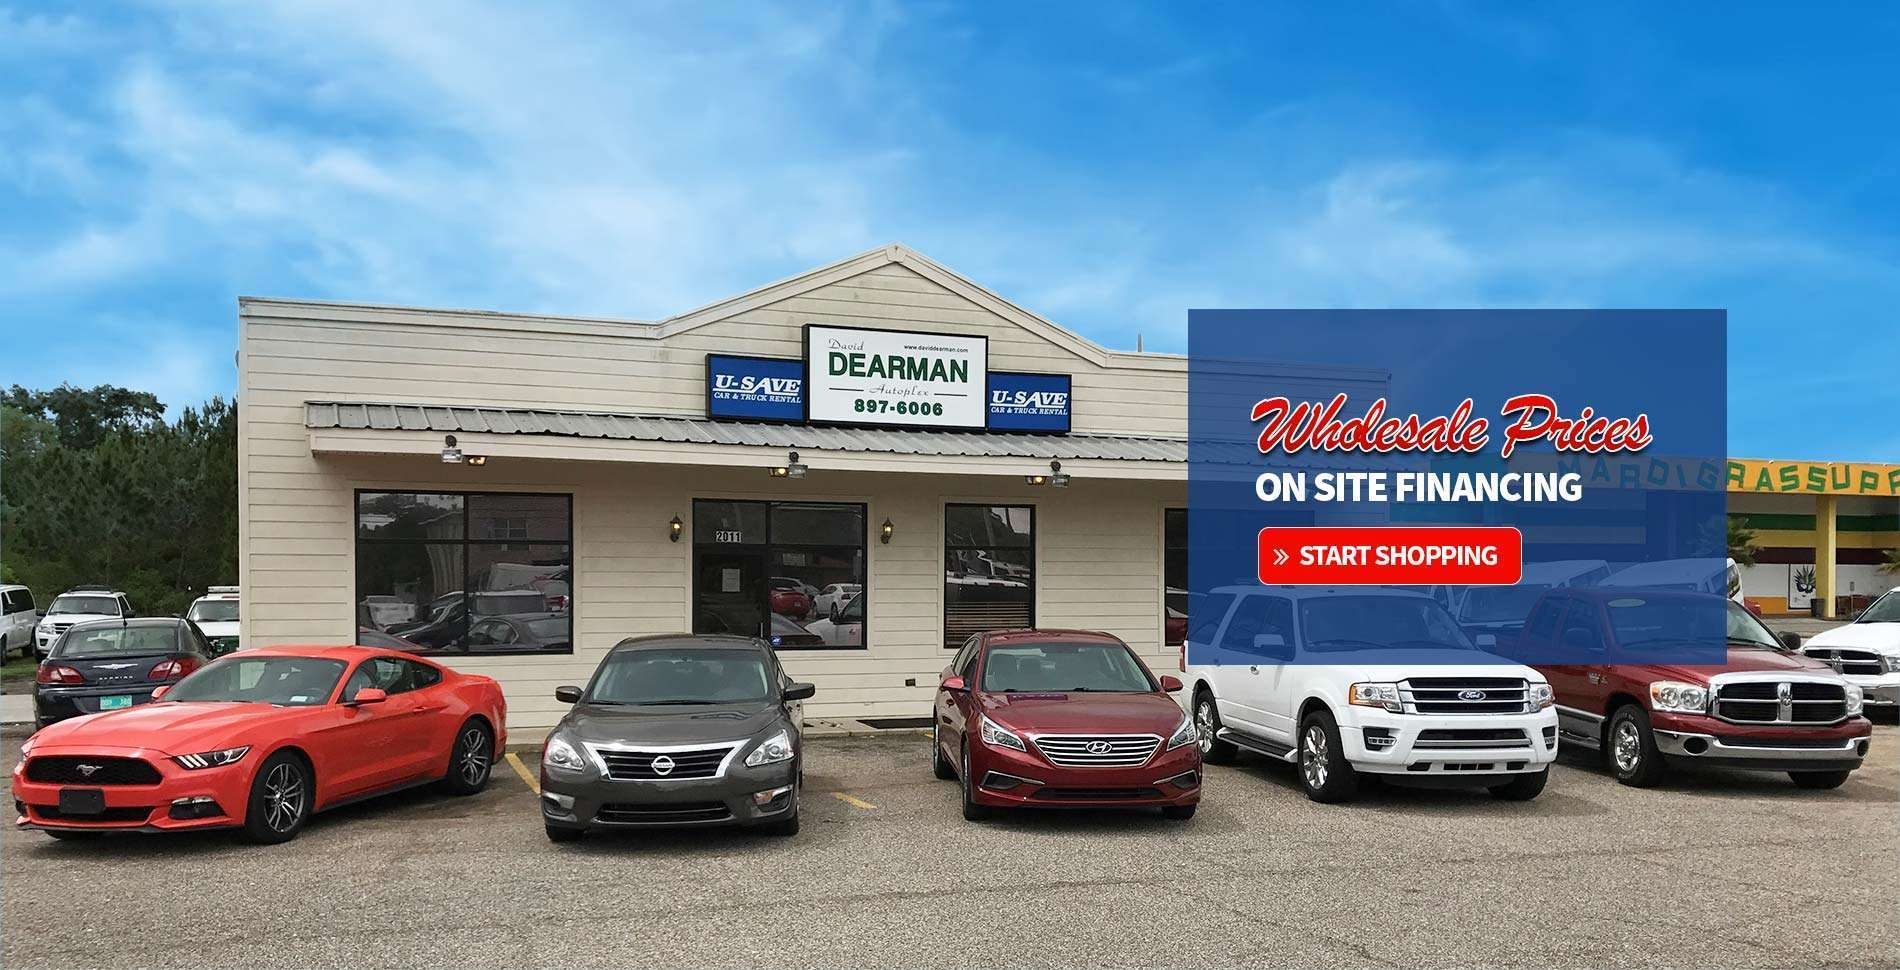 david dearman autoplex southern auto credit u save rentals used cars gulfport ms. Black Bedroom Furniture Sets. Home Design Ideas